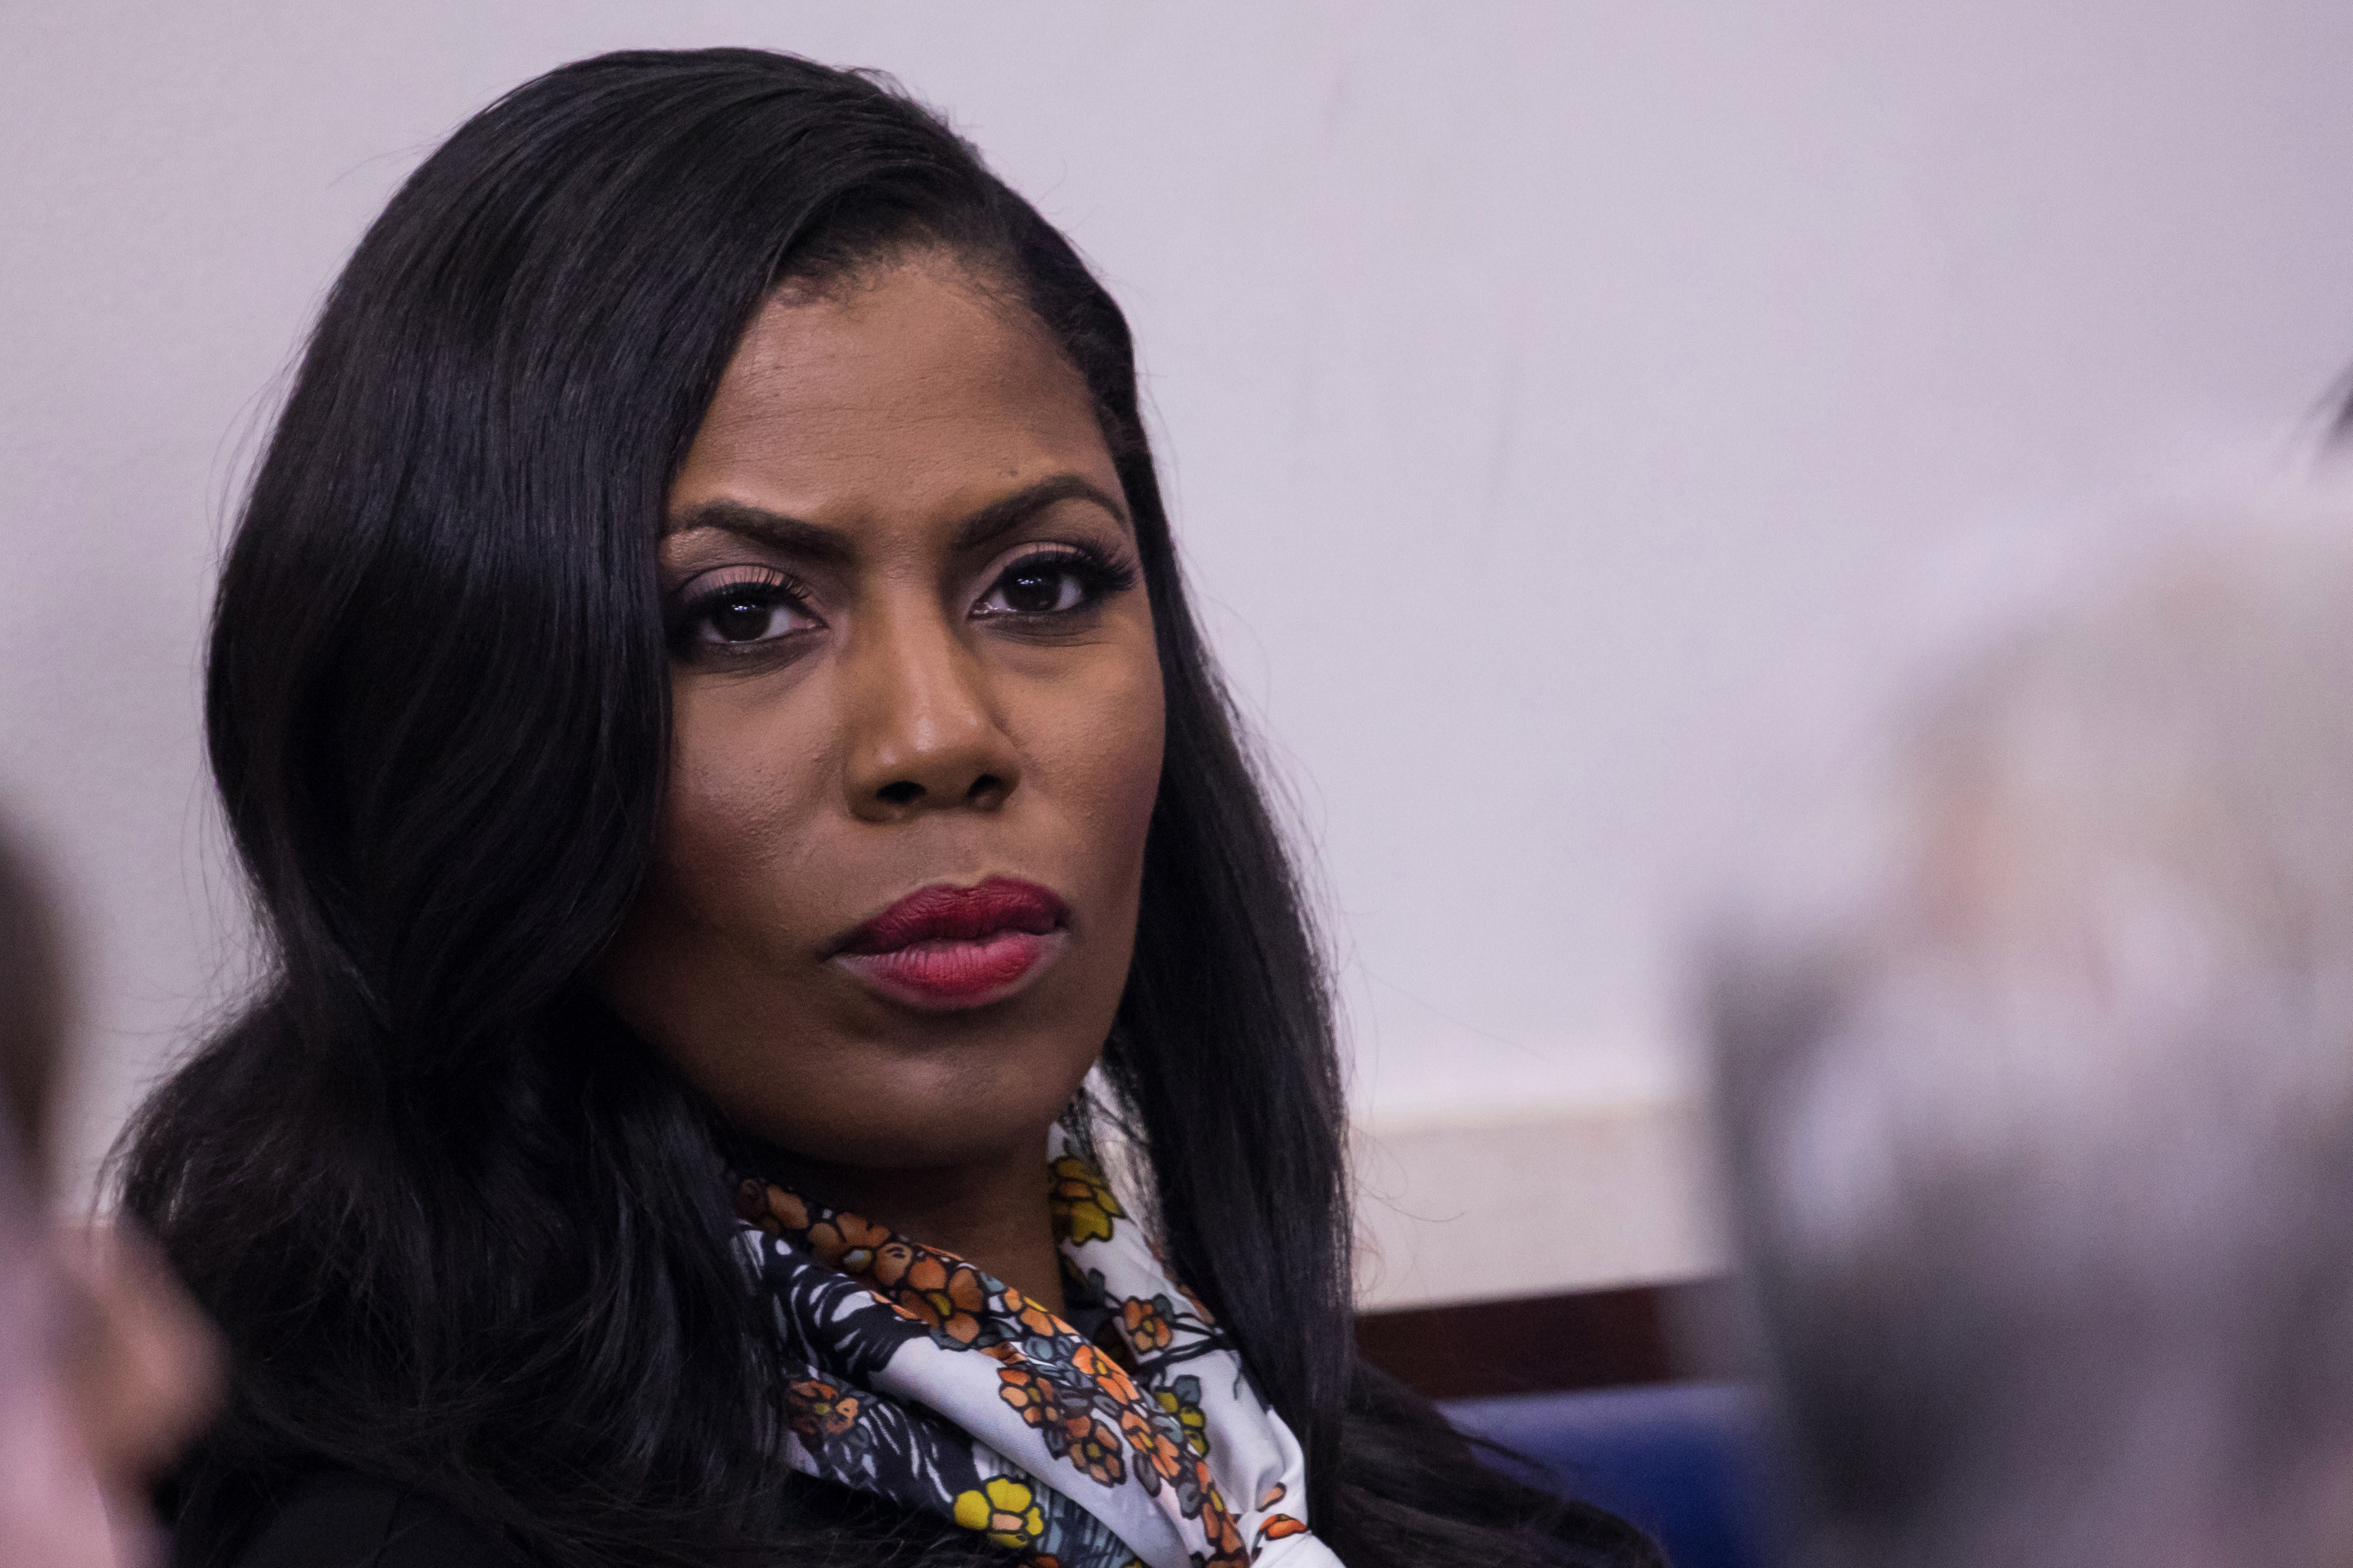 Cameo Girl Head Vases Sale Of Omarosa to Release New White House Tape On the View Intended for Gettyimages 692963130